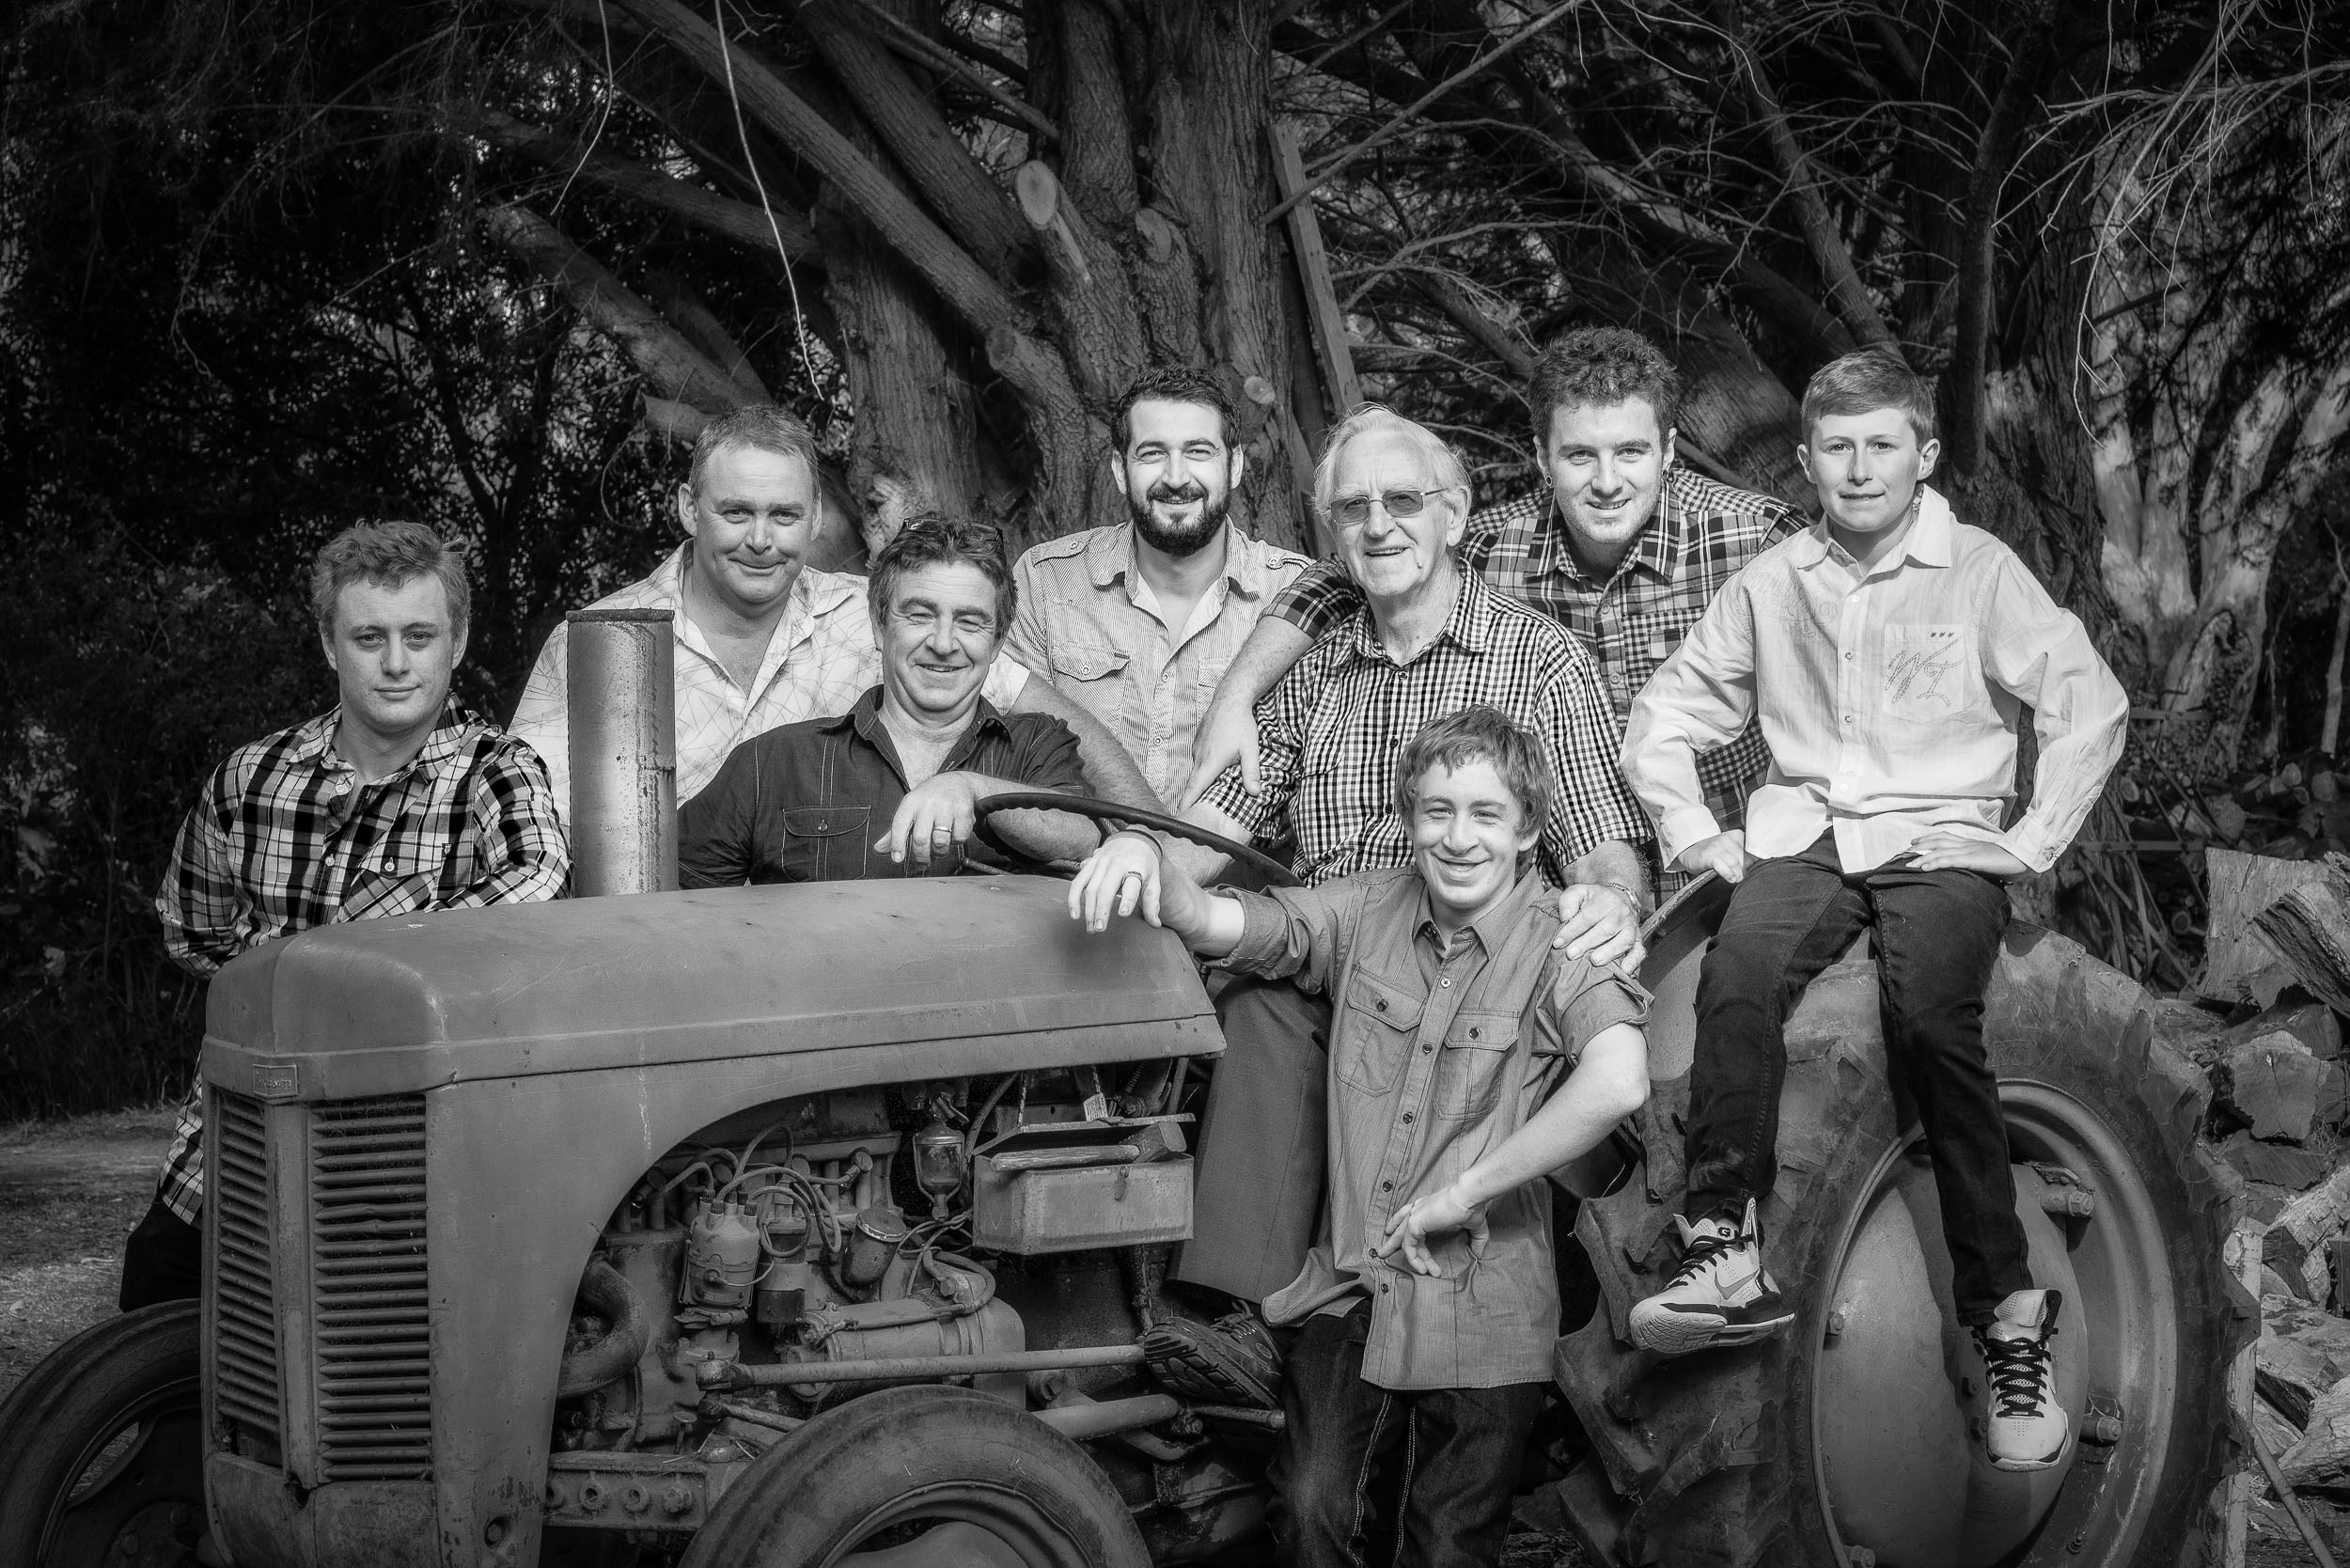 A  group photograph  featuring  three generations of men  on a  tractor  in  Hamilton, Australia .